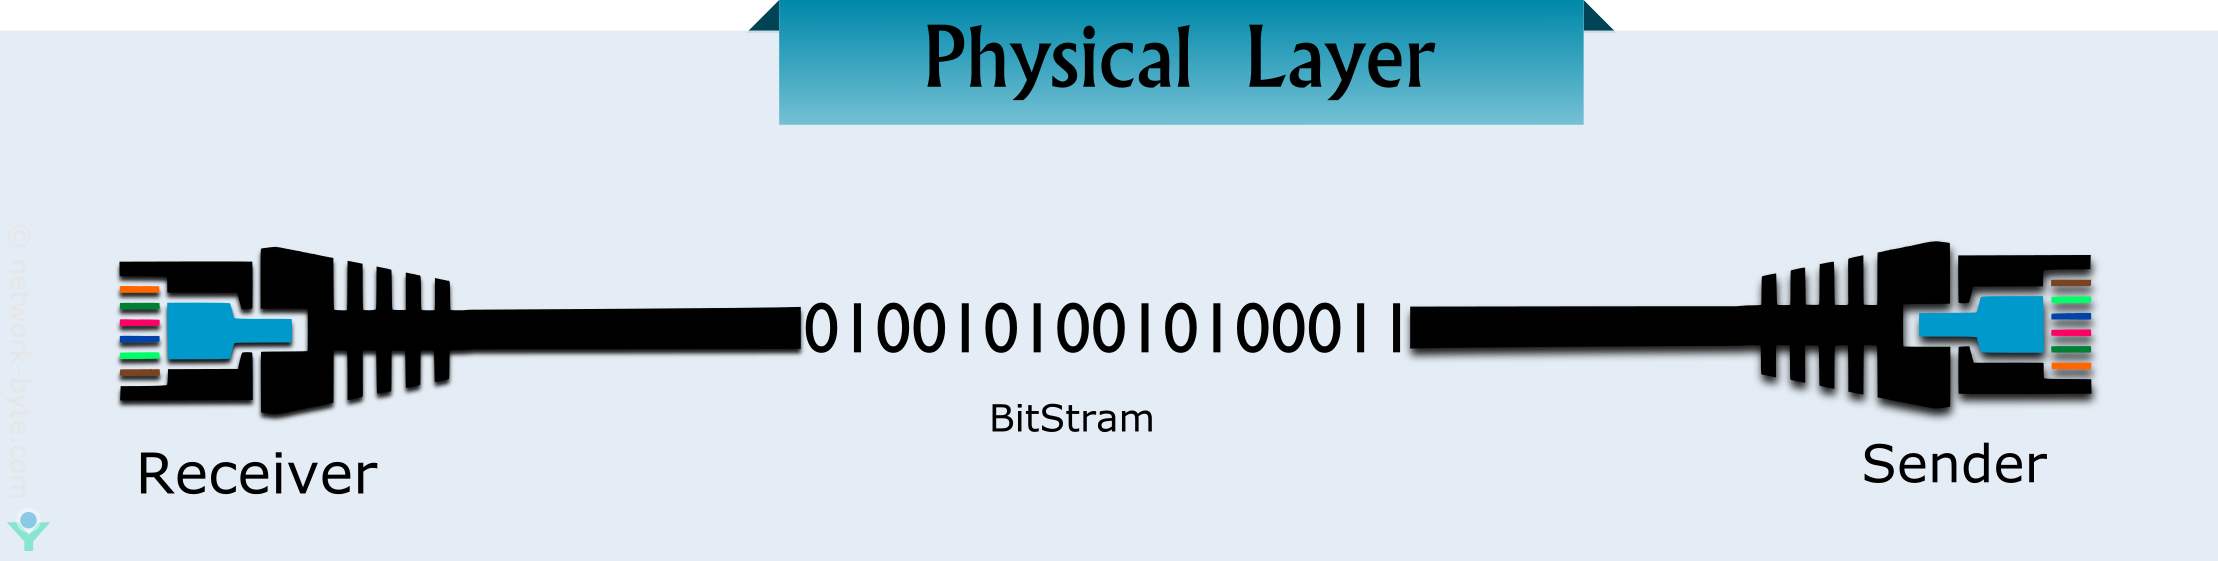 physical link layer in osi model